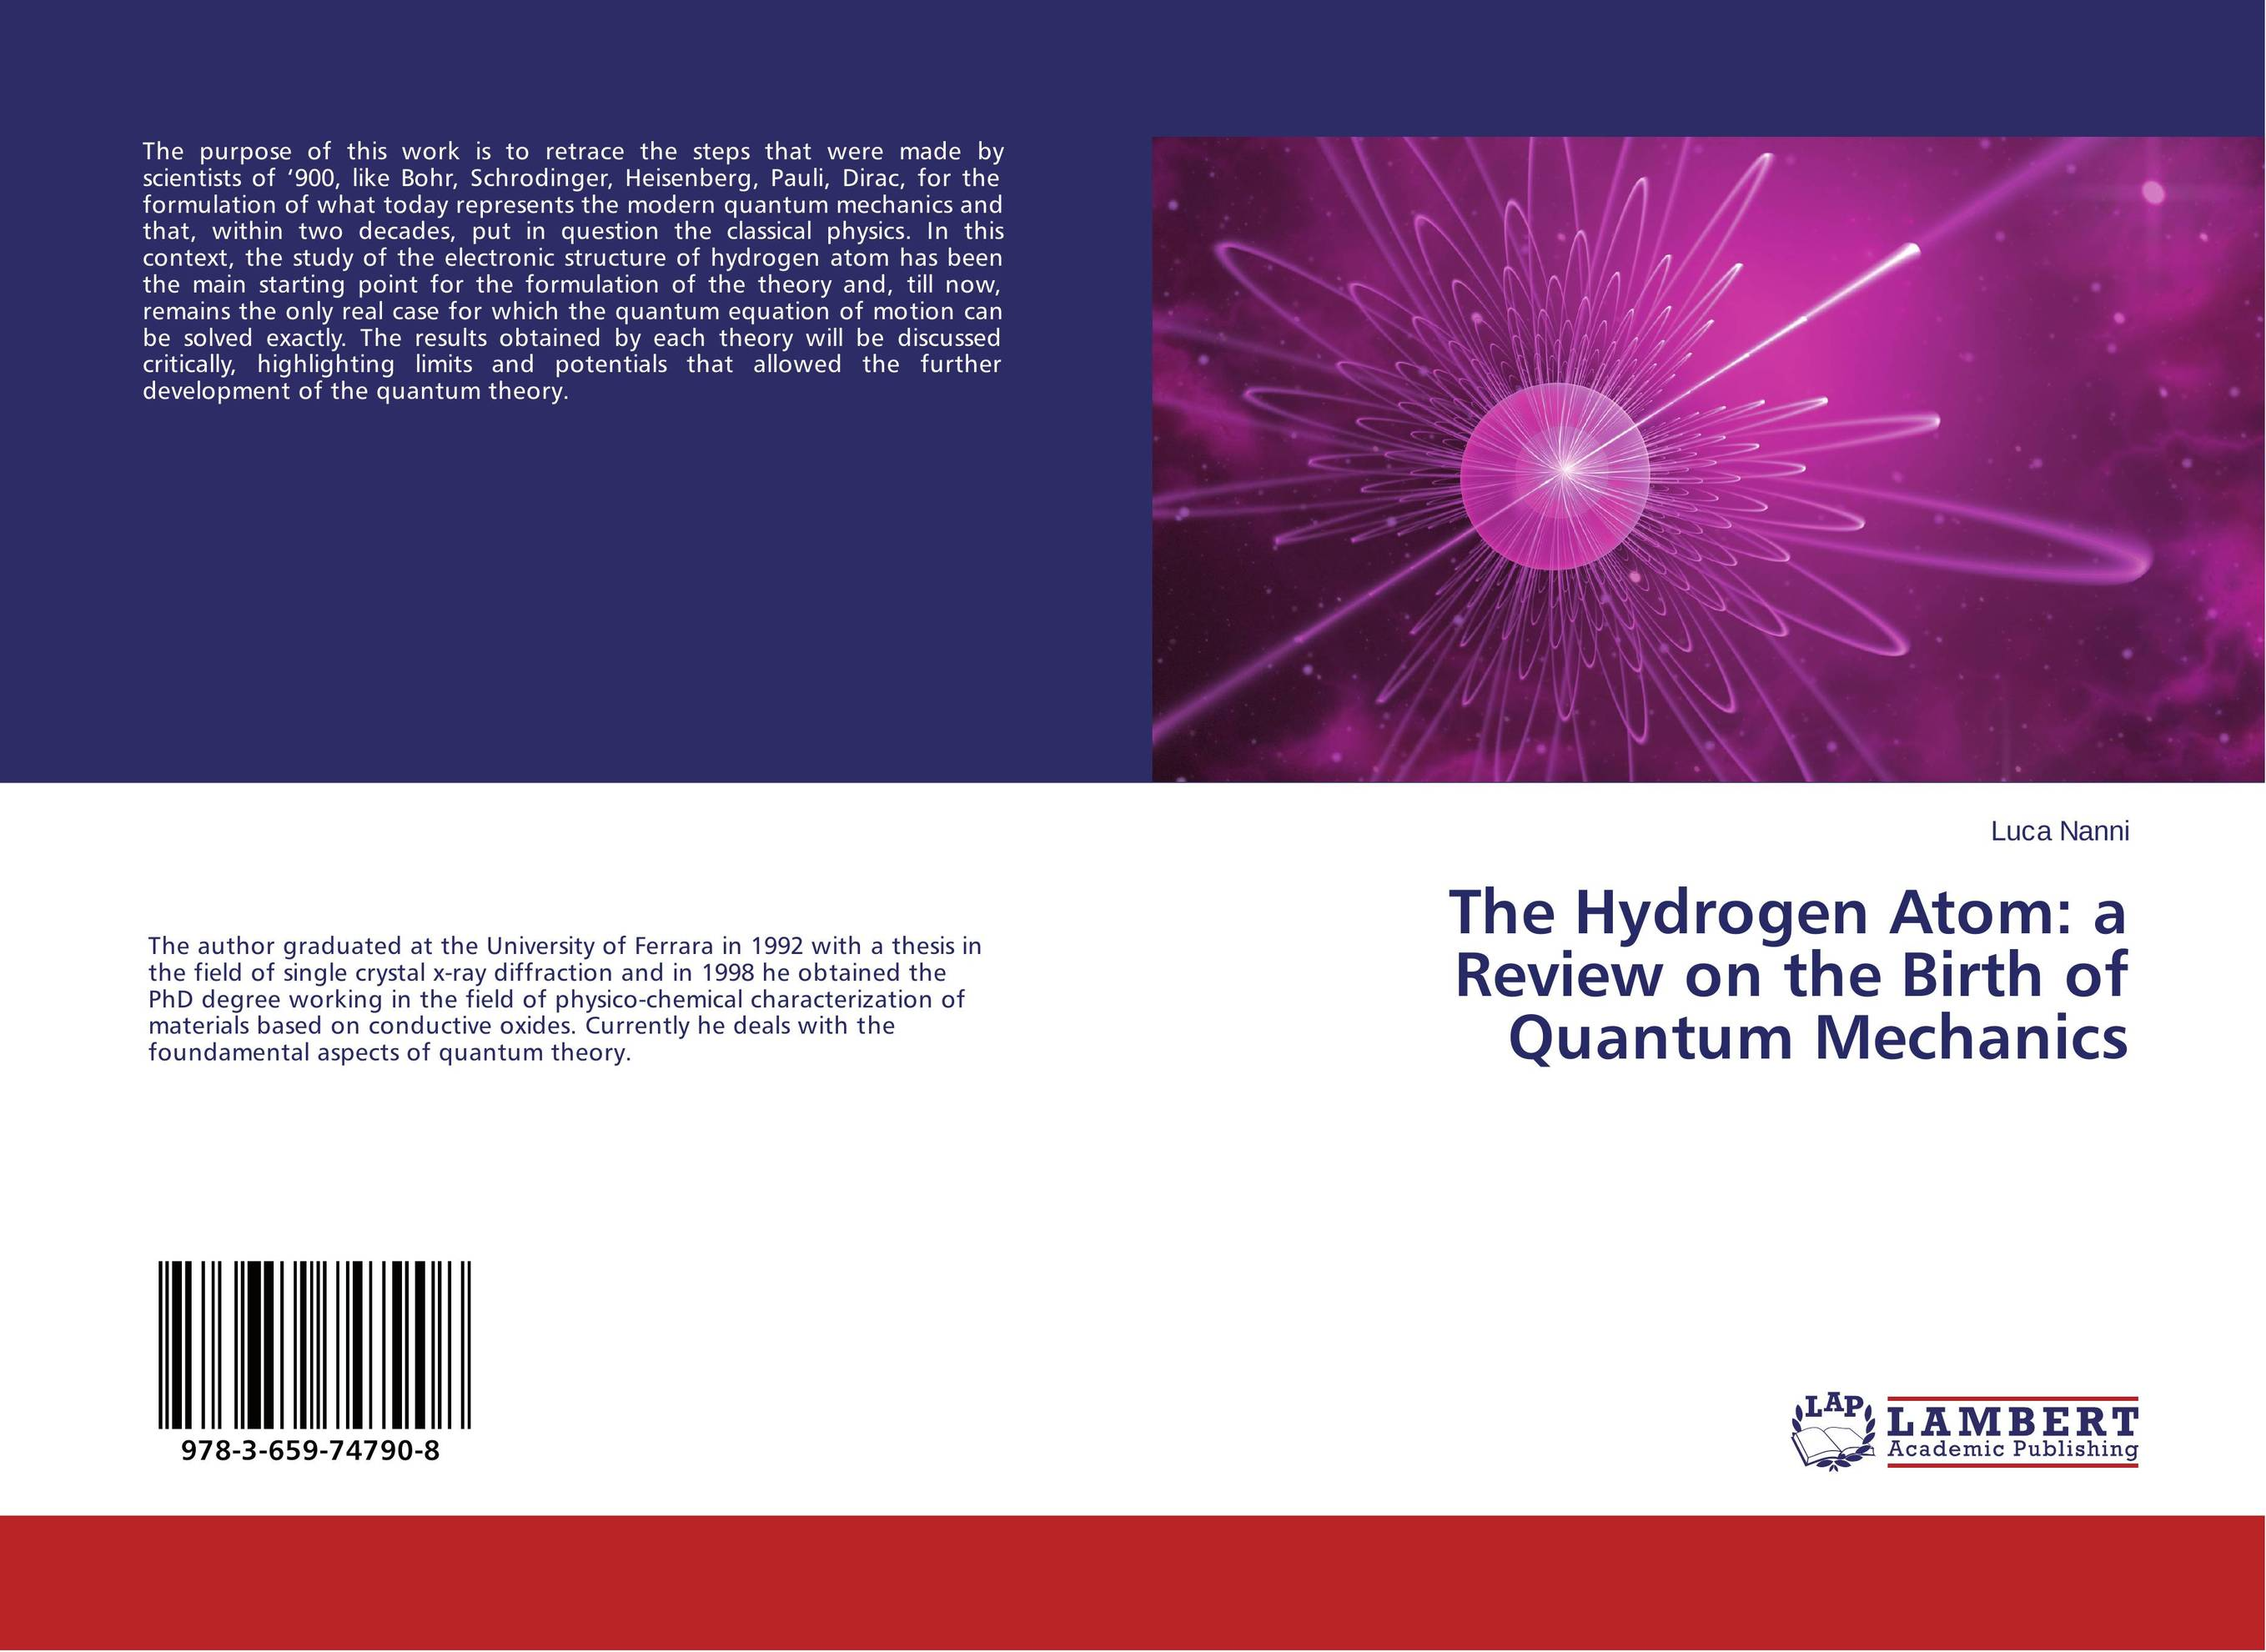 The Hydrogen Atom: a Review on the Birth of Quantum Mechanics